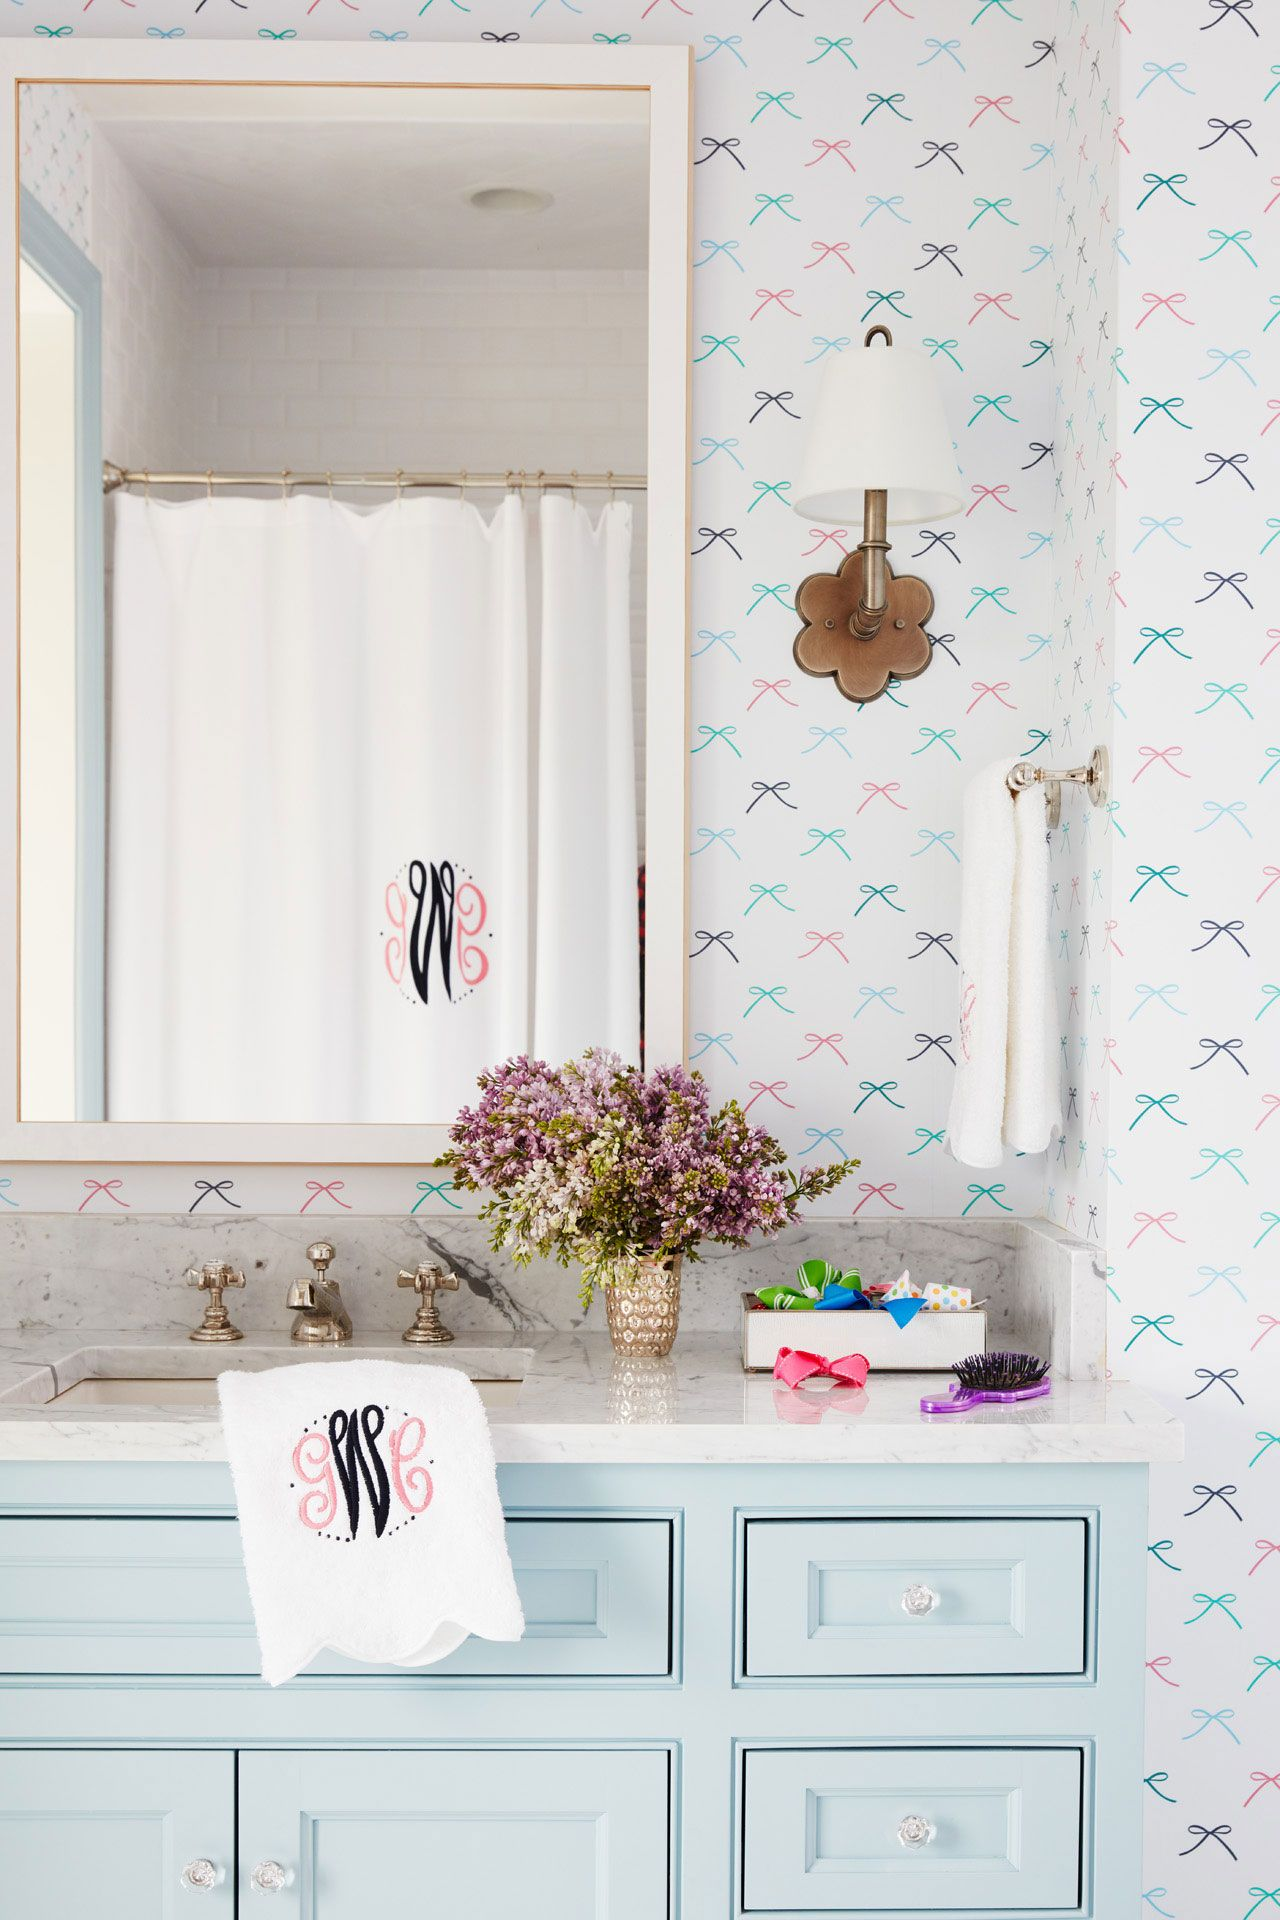 Andrew Howard Interior Design Fair View A great bathroom for kids LOVE